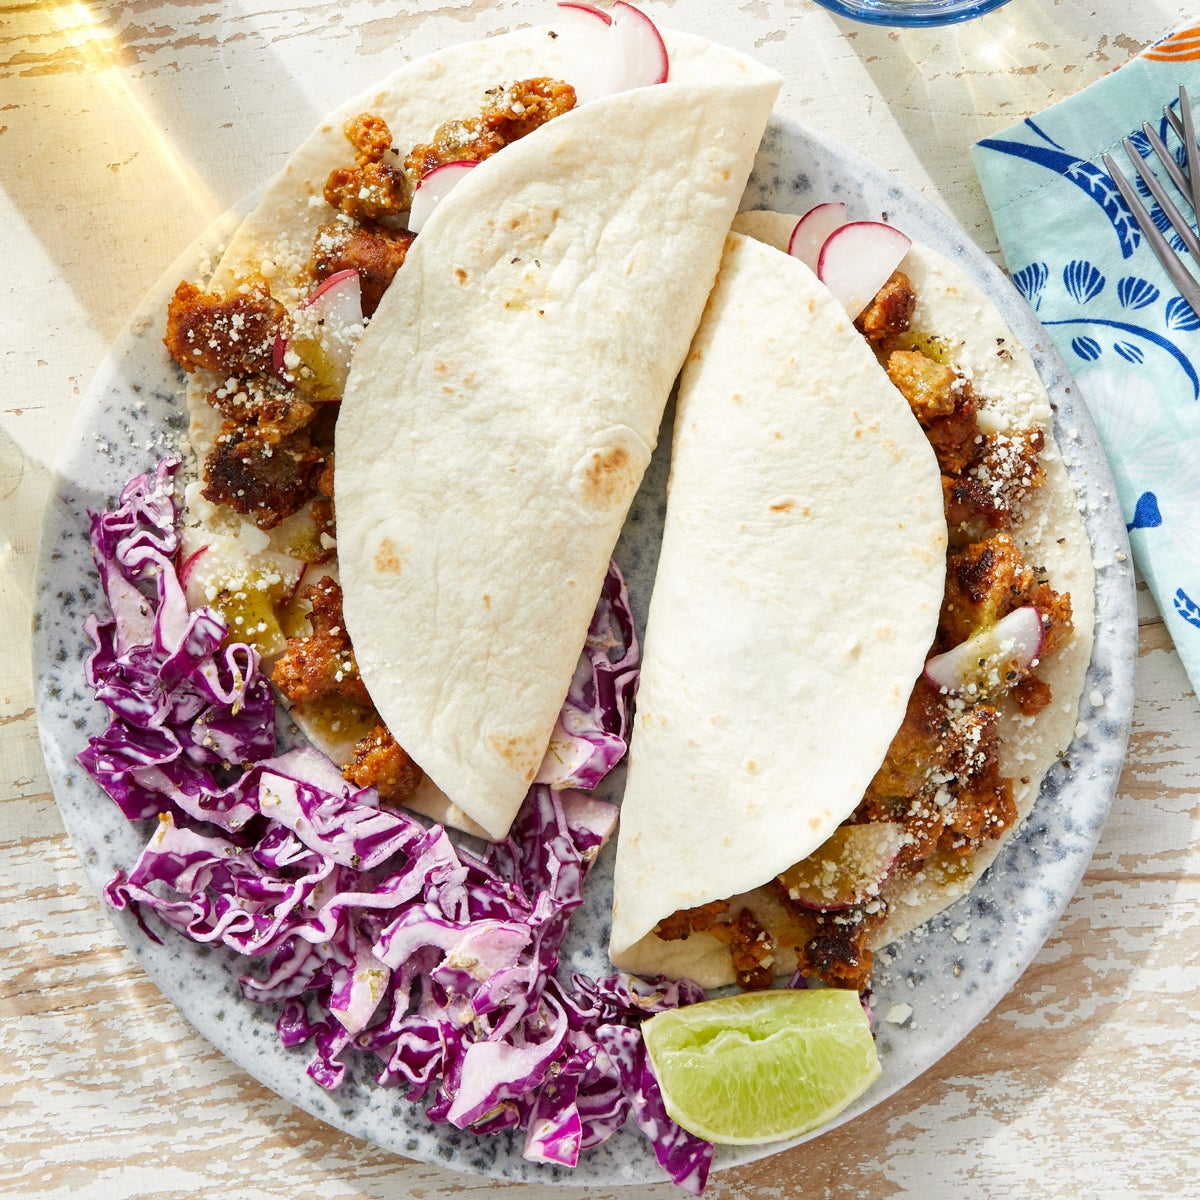 Tomatillo Pork Tacos with Cotija & Cabbage Slaw